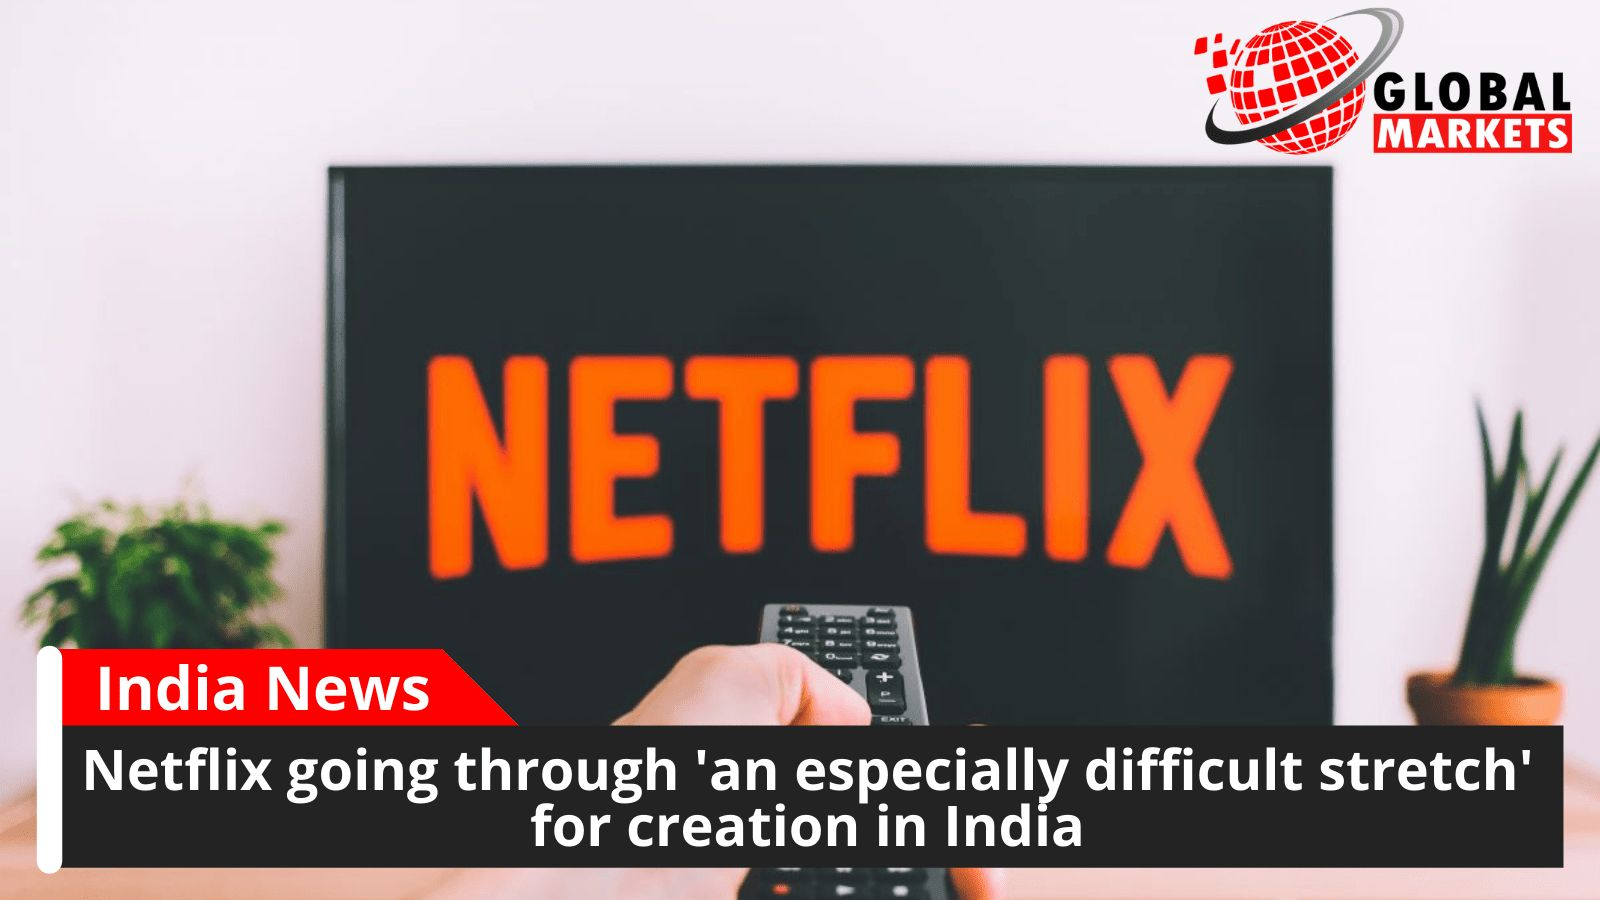 Netflix going through 'an especially difficult stretch' for creation in India